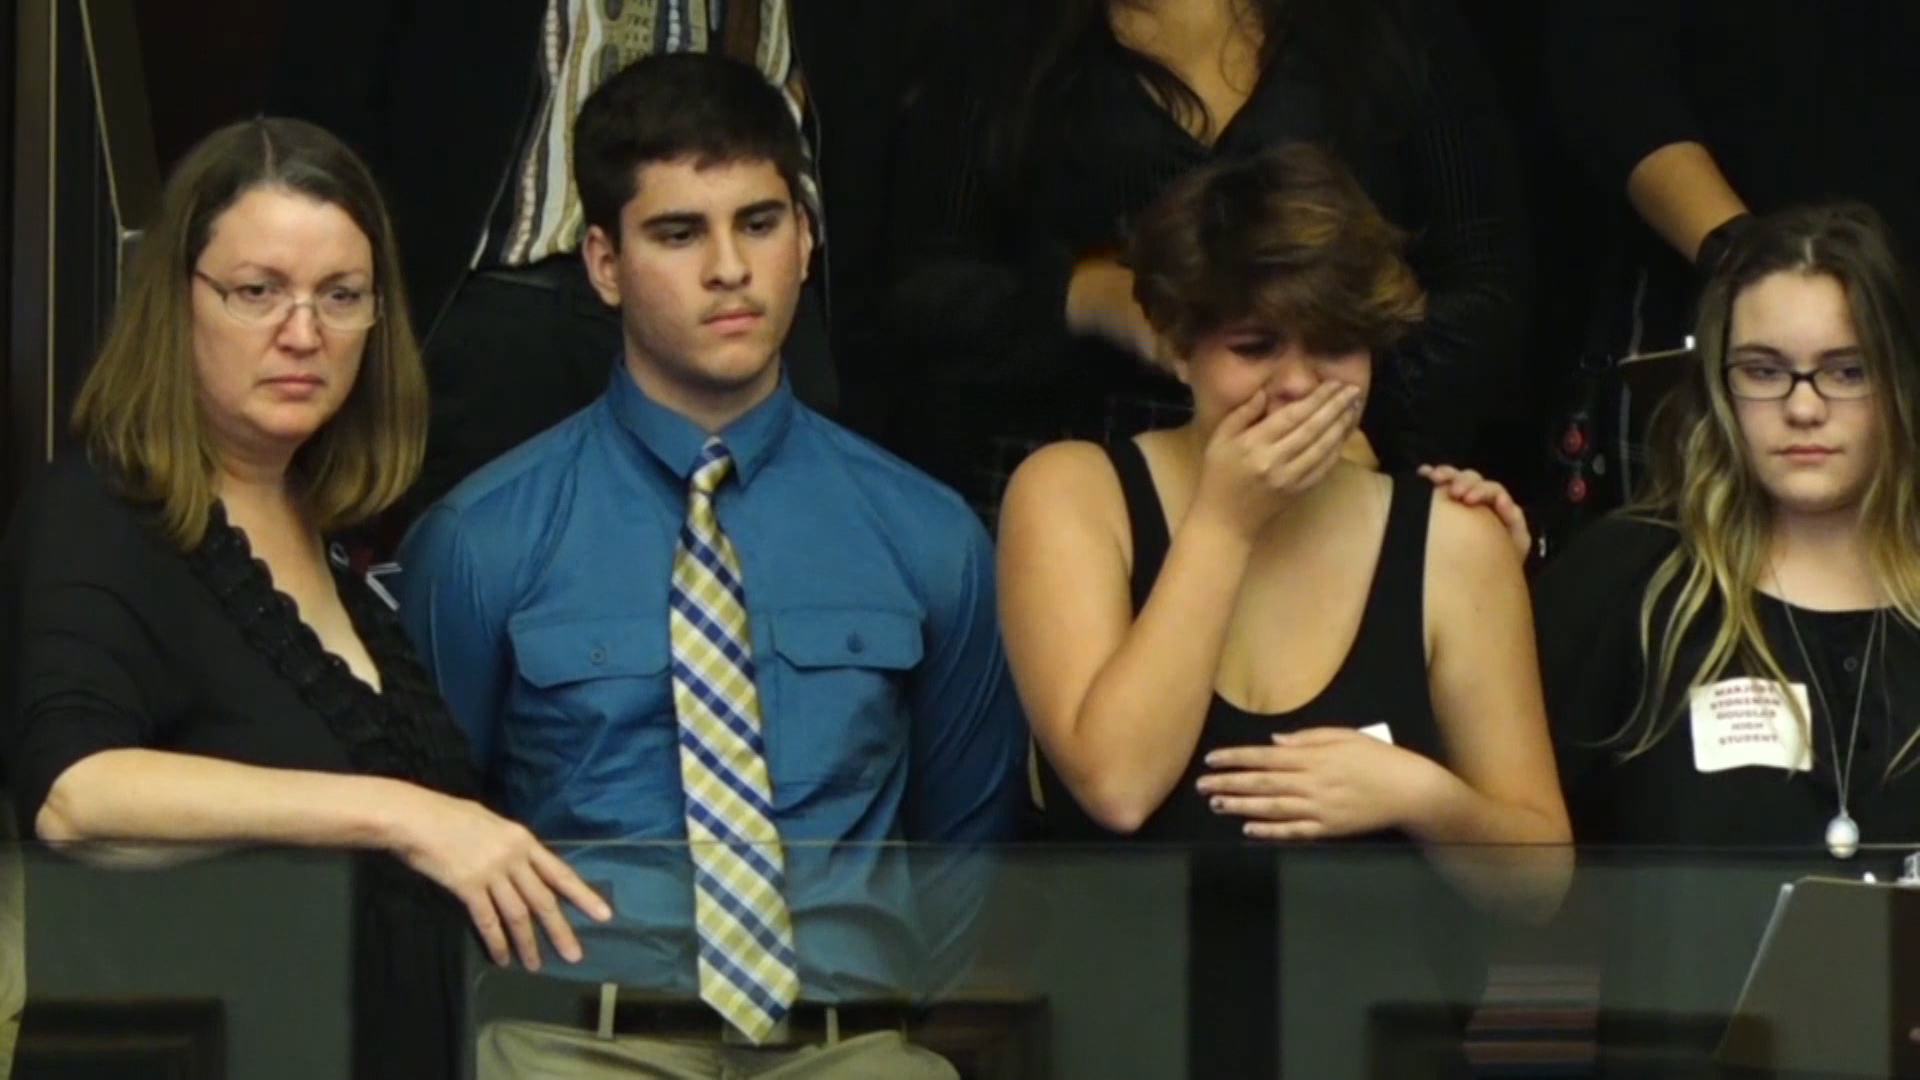 Students Become Emotional At Florida Capitol As Lawmakers Refuse Assault Weapons Ban